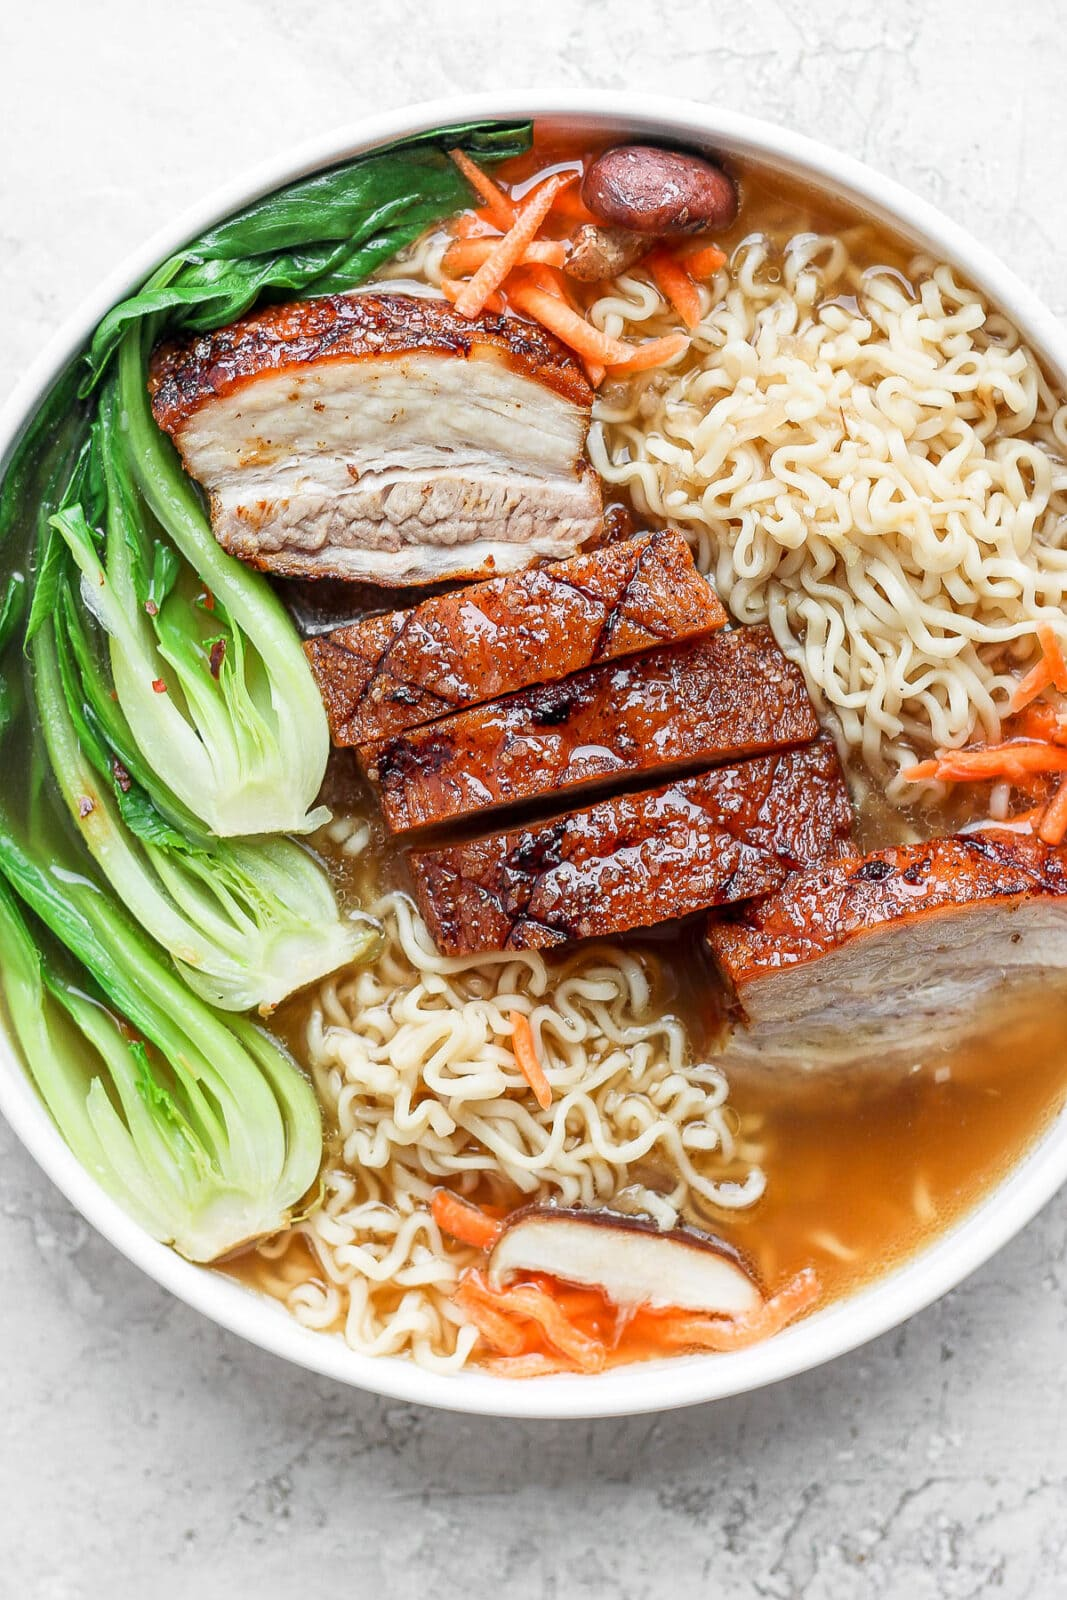 Pork belly ramen in a bowl without a poached egg.